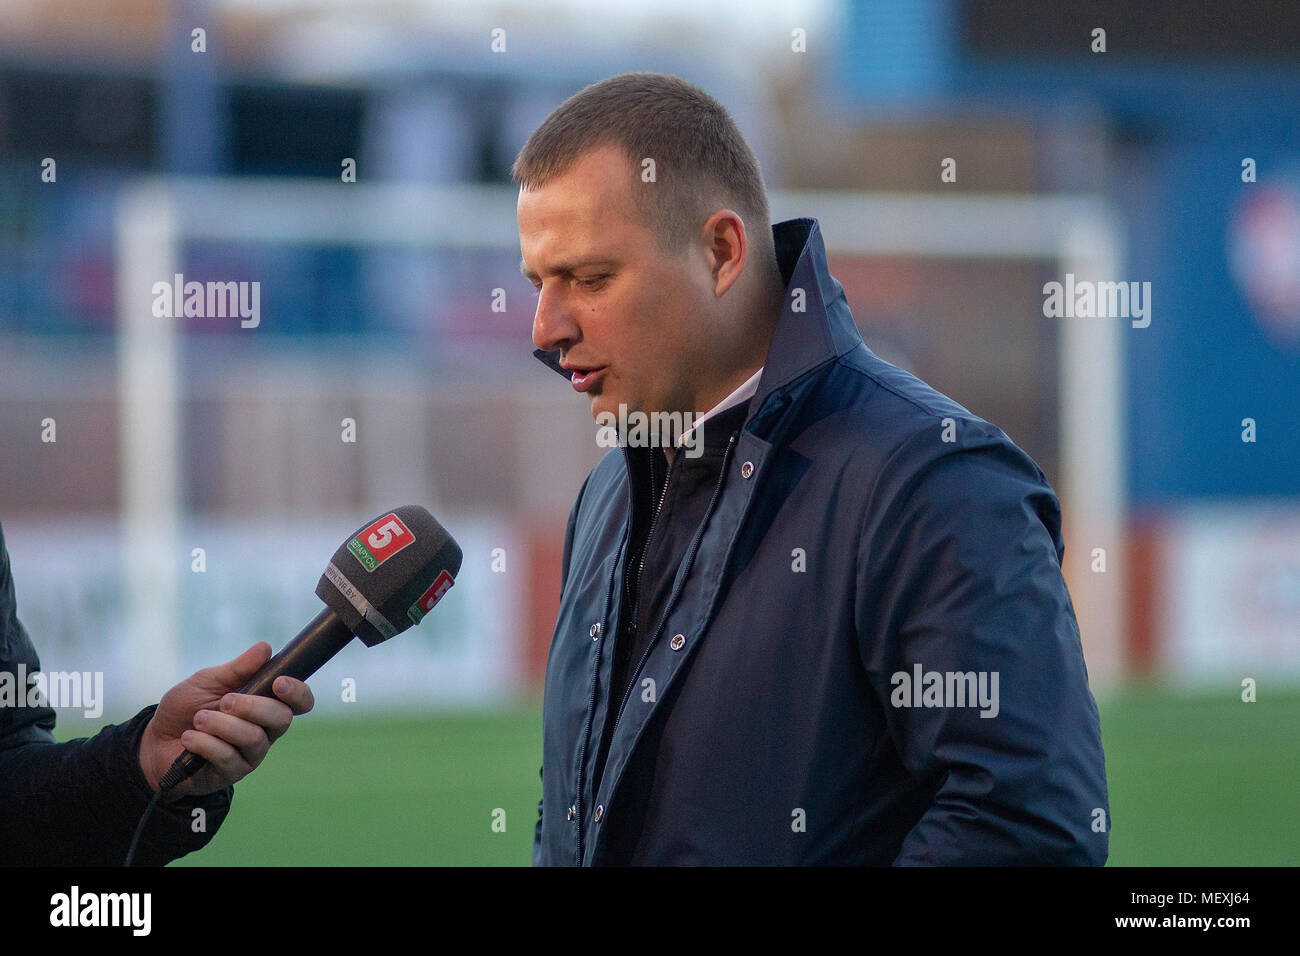 MINSK, BELARUS - APRIL 7, 2018: Vitaly Zhukovsky, head coach of FC Isloch gives interview after the Belarusian Premier League football match between FC Dynamo and FC Isloch at the FC Minsk Stadium. - Stock Image